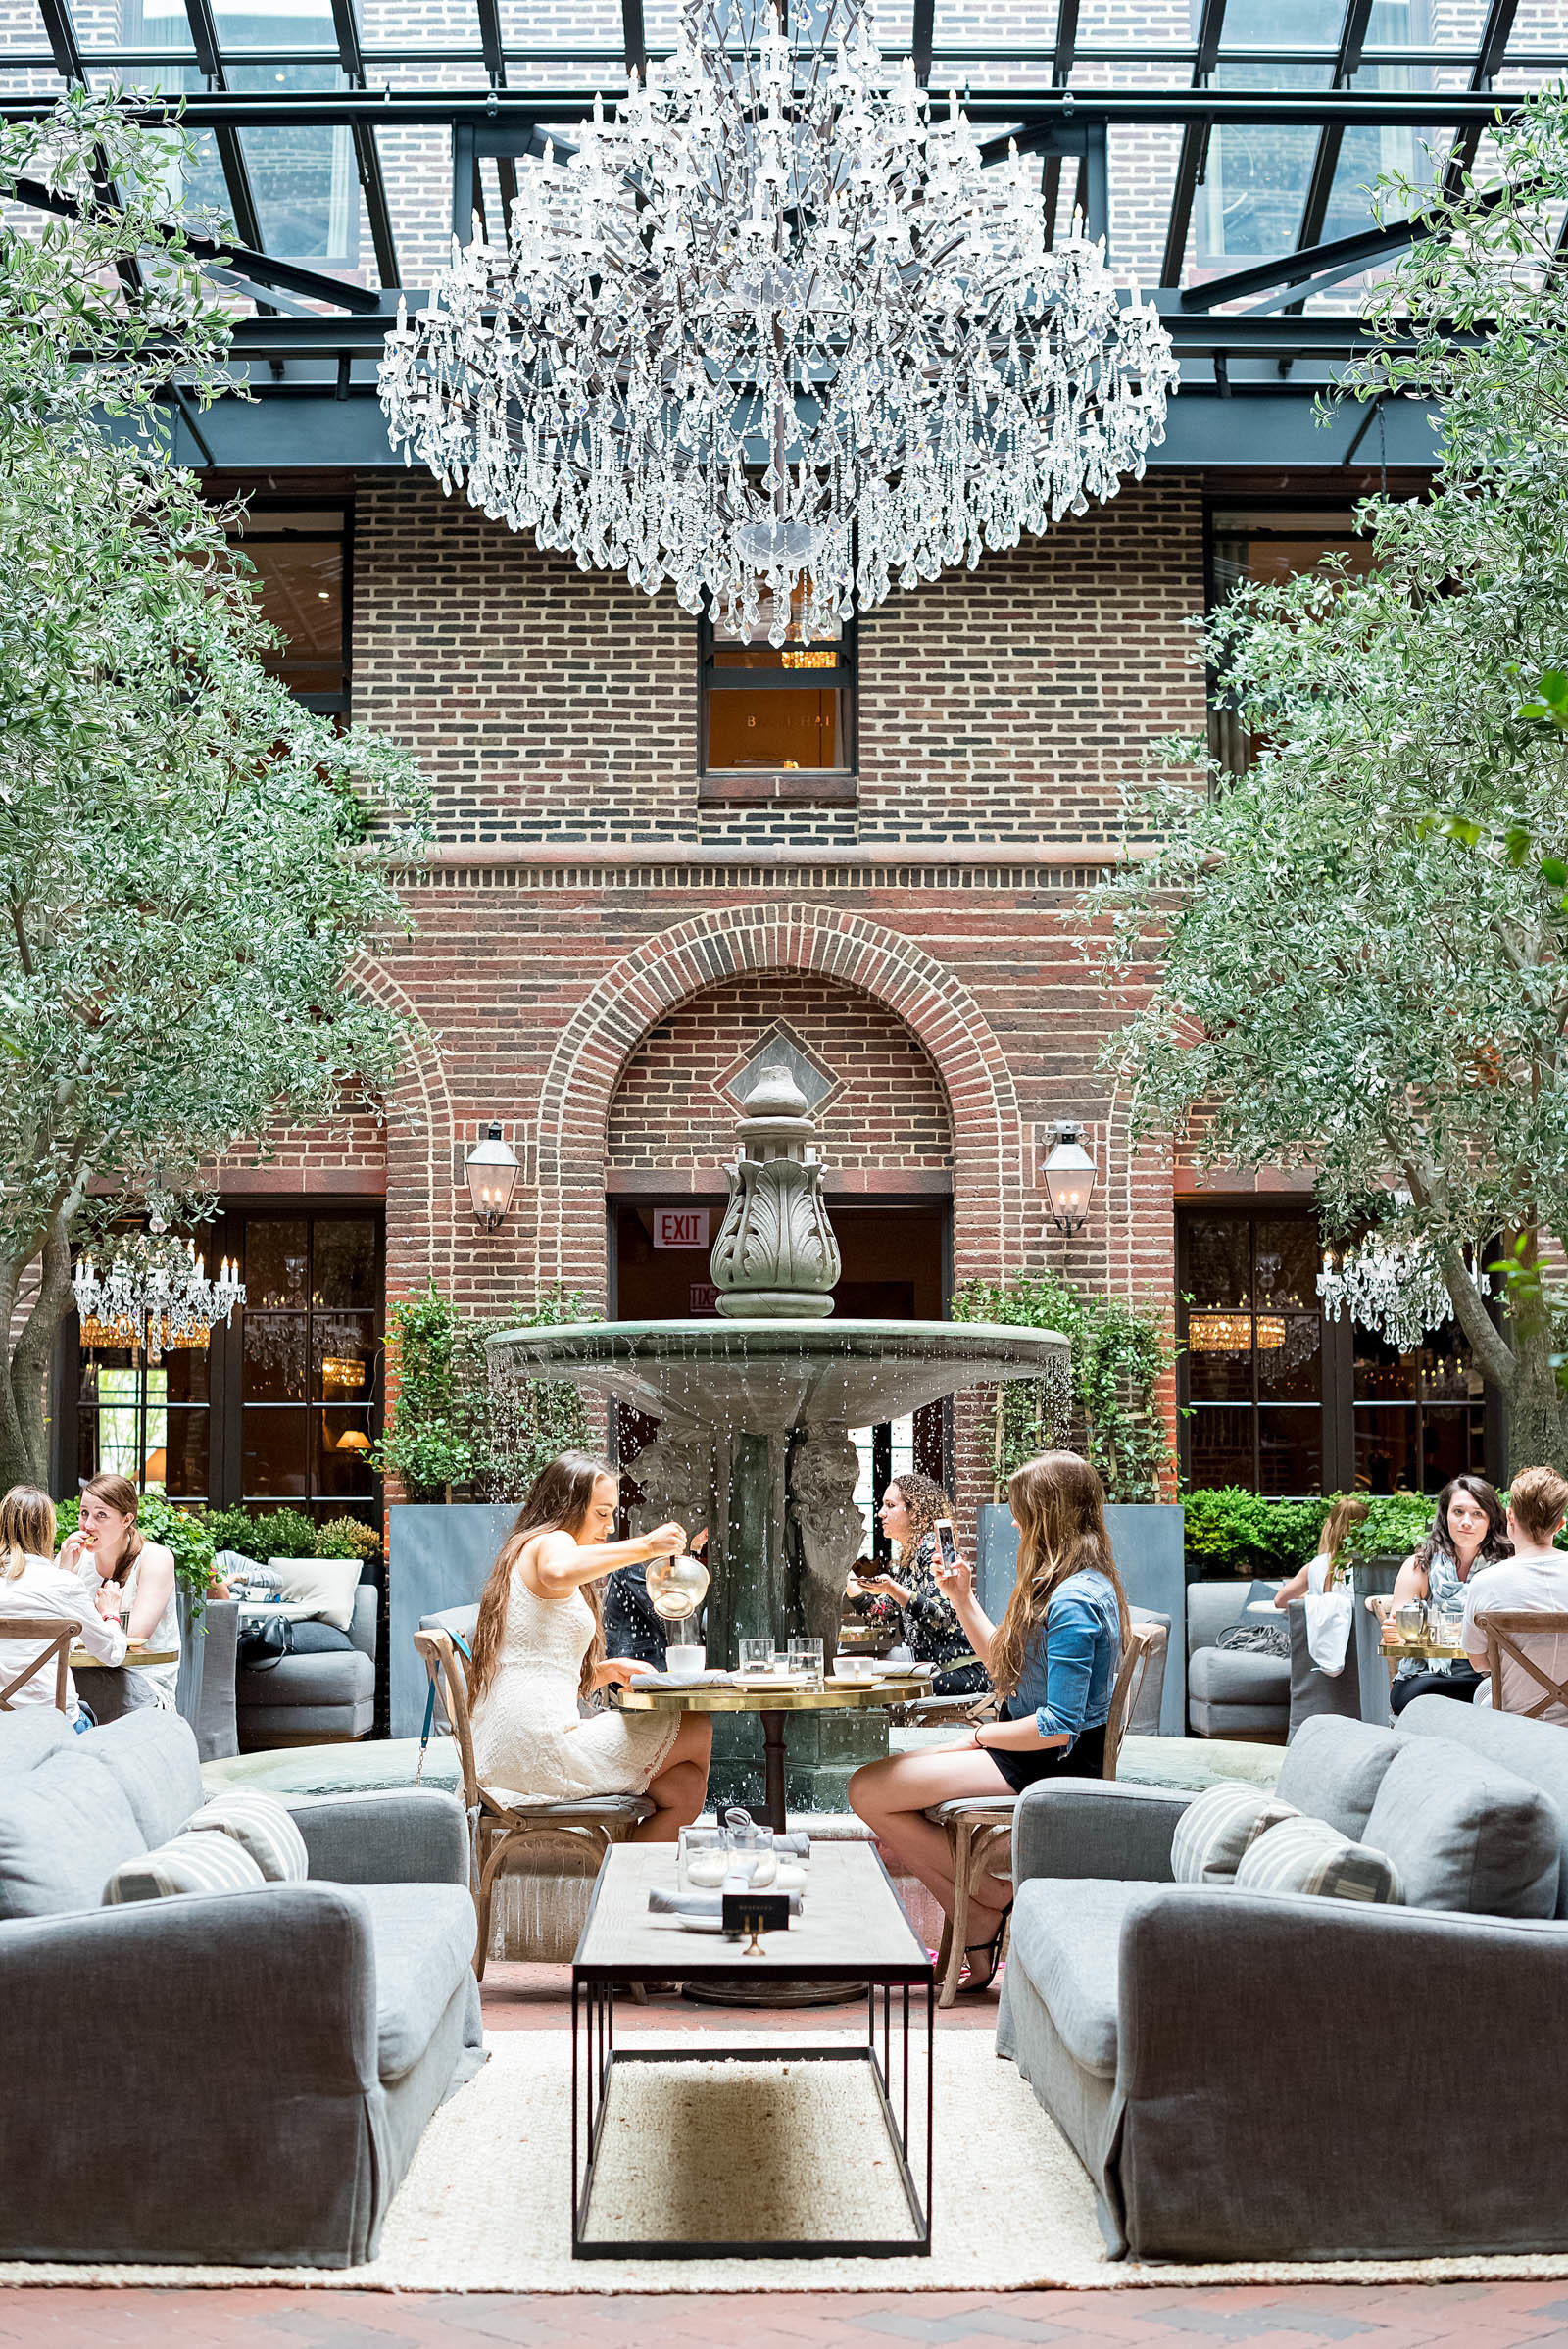 Restoration Hardware Cafe : Fountainside luncheons at arts club cafe sed bona